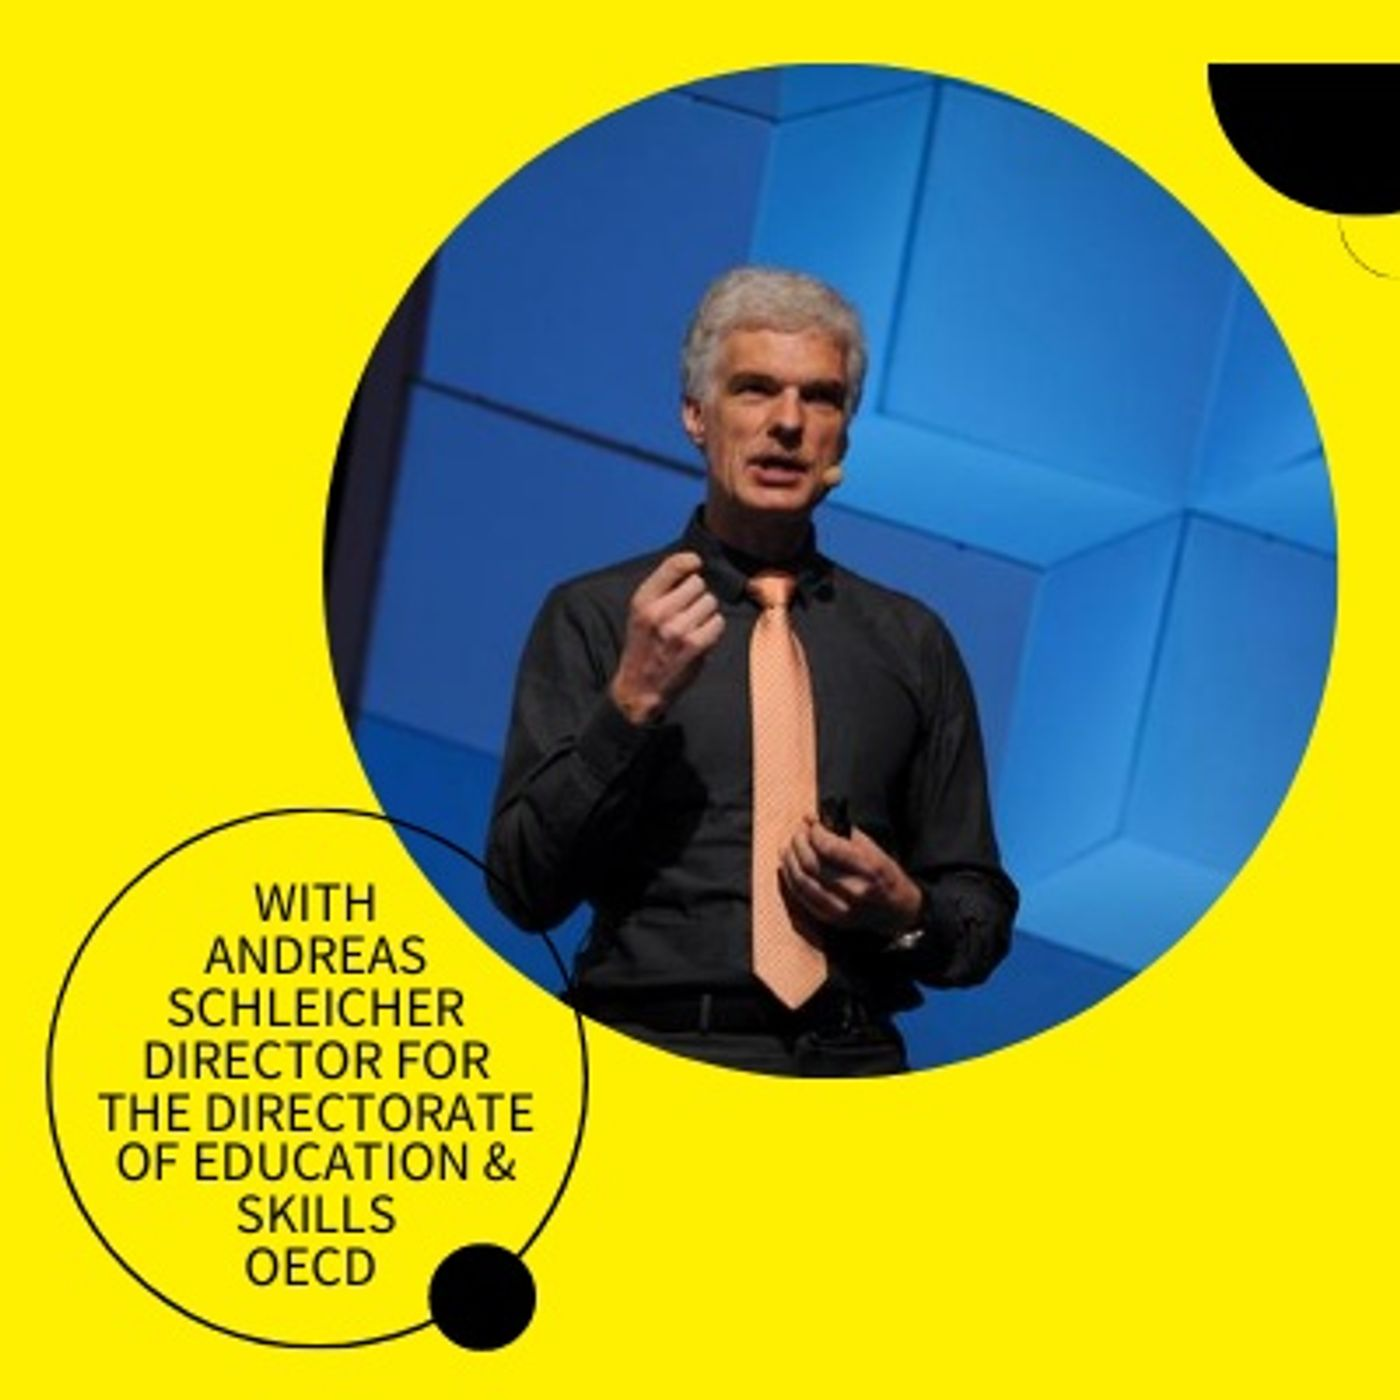 #2, Andreas Schleicher: Will COVID-19 Accelerate or Squash Efforts to Make Education More Than Just Tests?